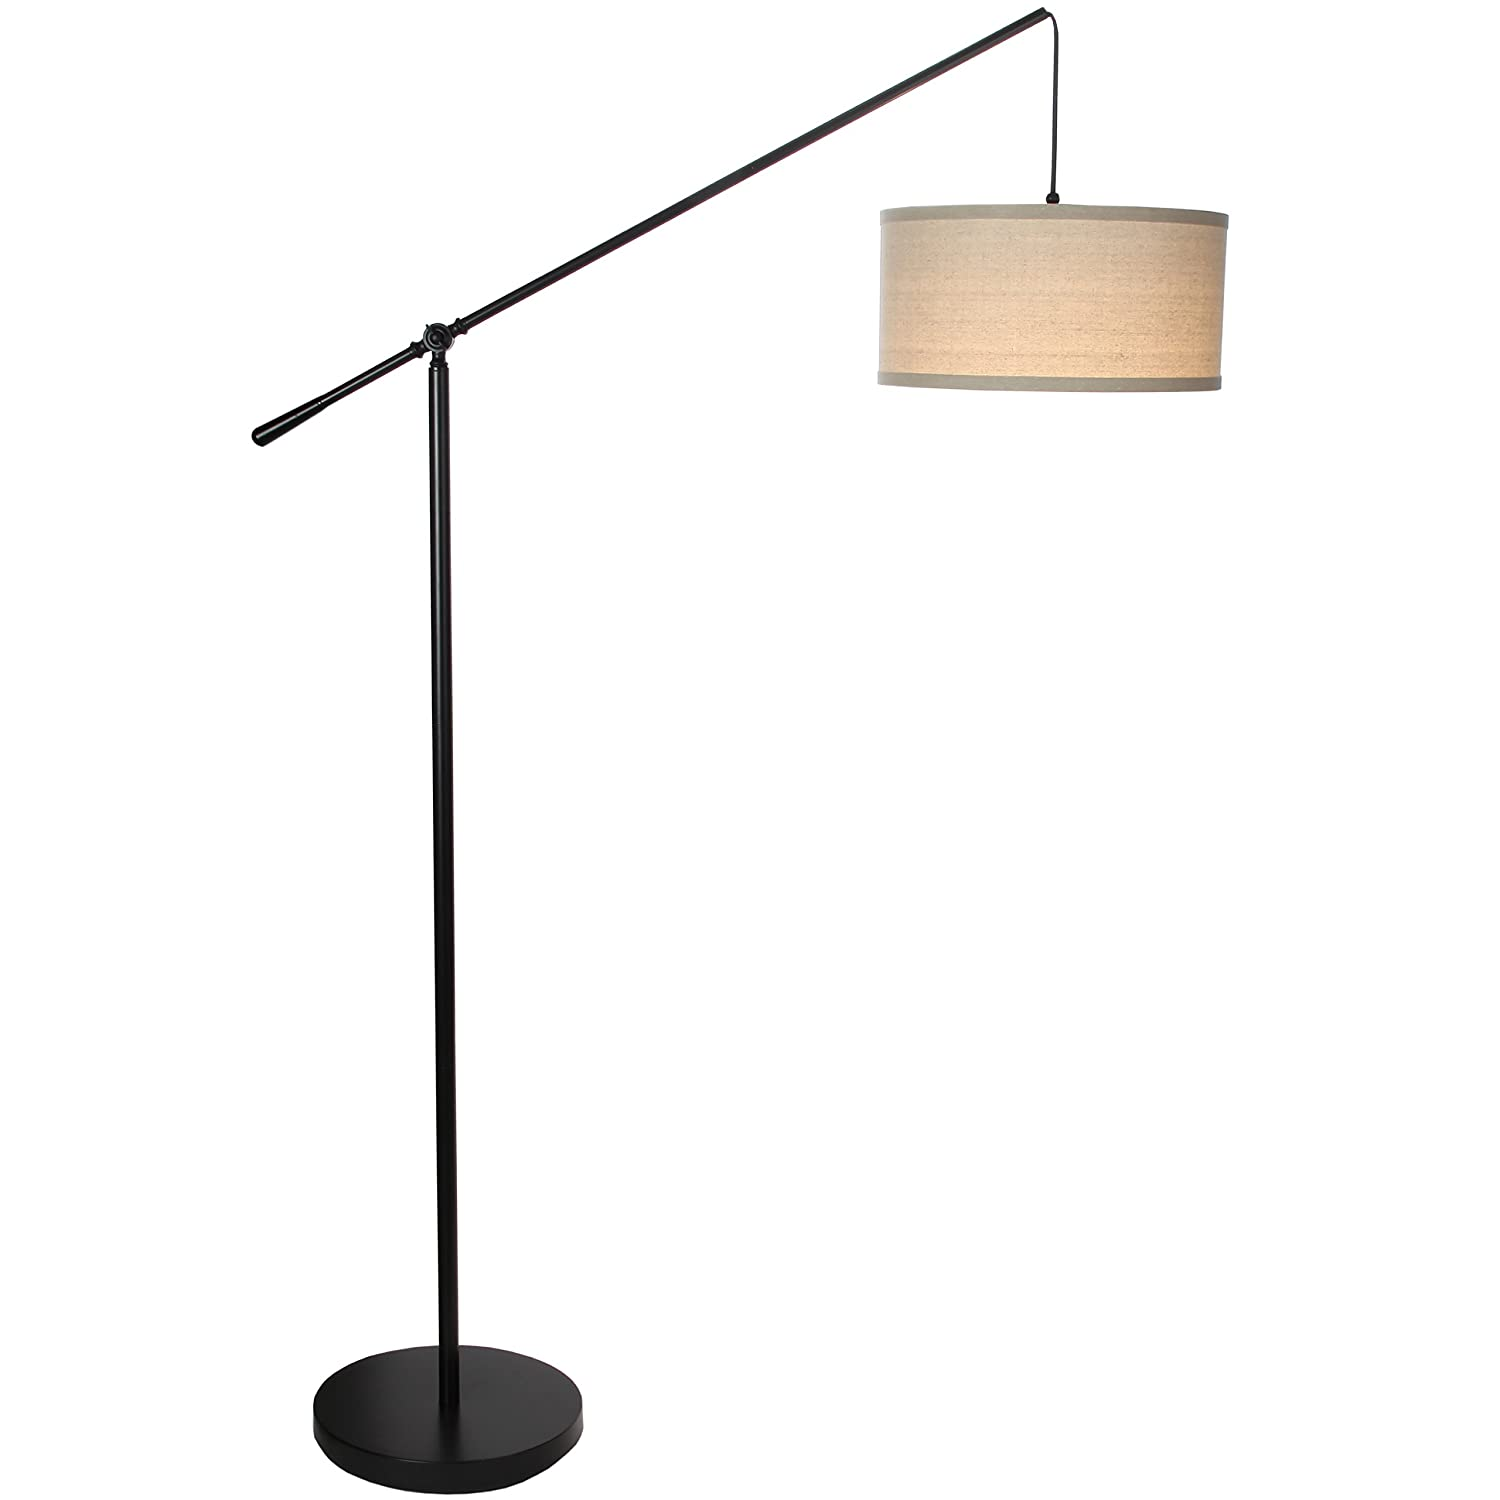 Brightech Hudson 2 - Living Room LED Arc Floor Lamp for Behind The Couch - Pole Hanging Light to Stand up Over The Sofa - with LED Bulb- Jet Black HUDSON-BK